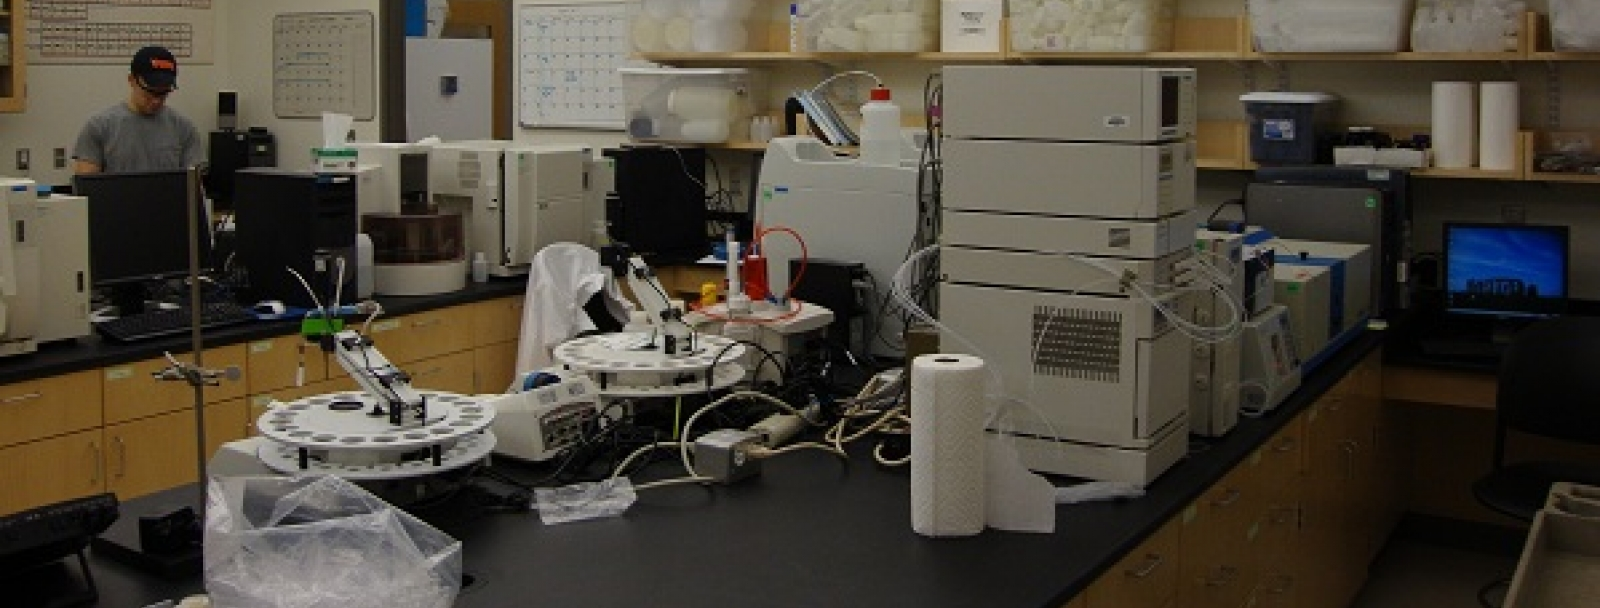 view of lab and equipment